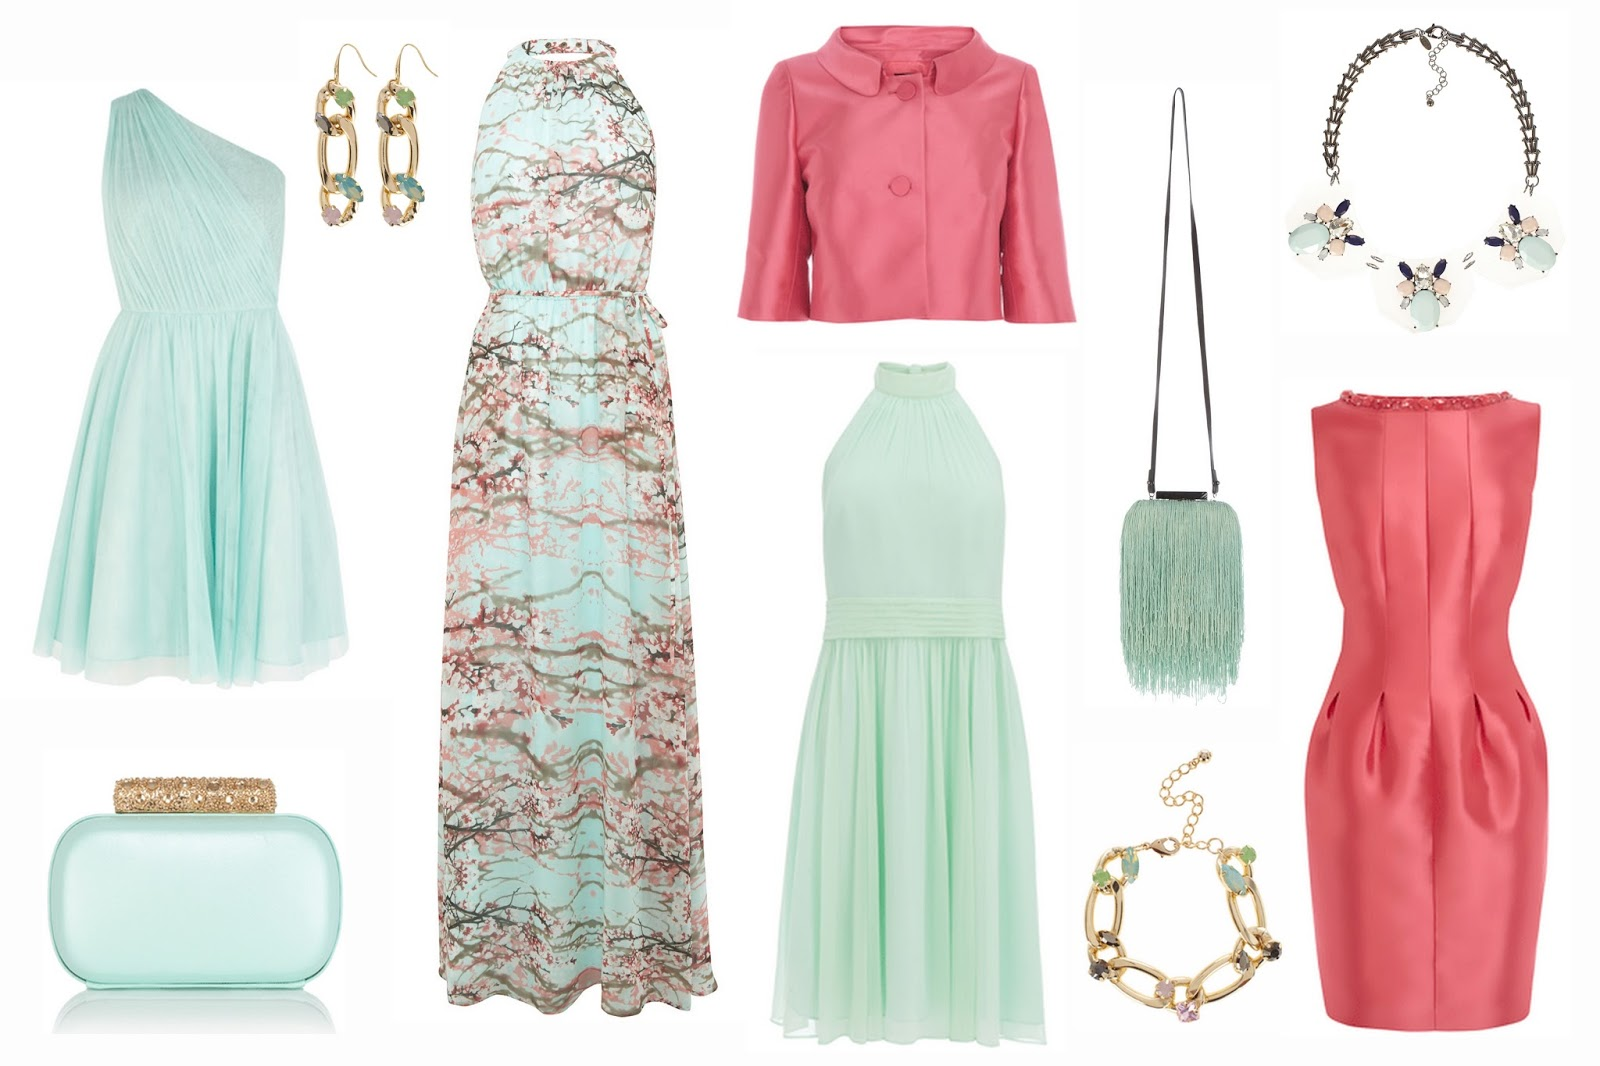 wedding guest dresses summer wedding guest maxi dress From top to bottom Poppy aqua mint one shouldered dress 85 Naomi mint clutch 28 Thalia earrings 5 Cherry Blossom maxi dress